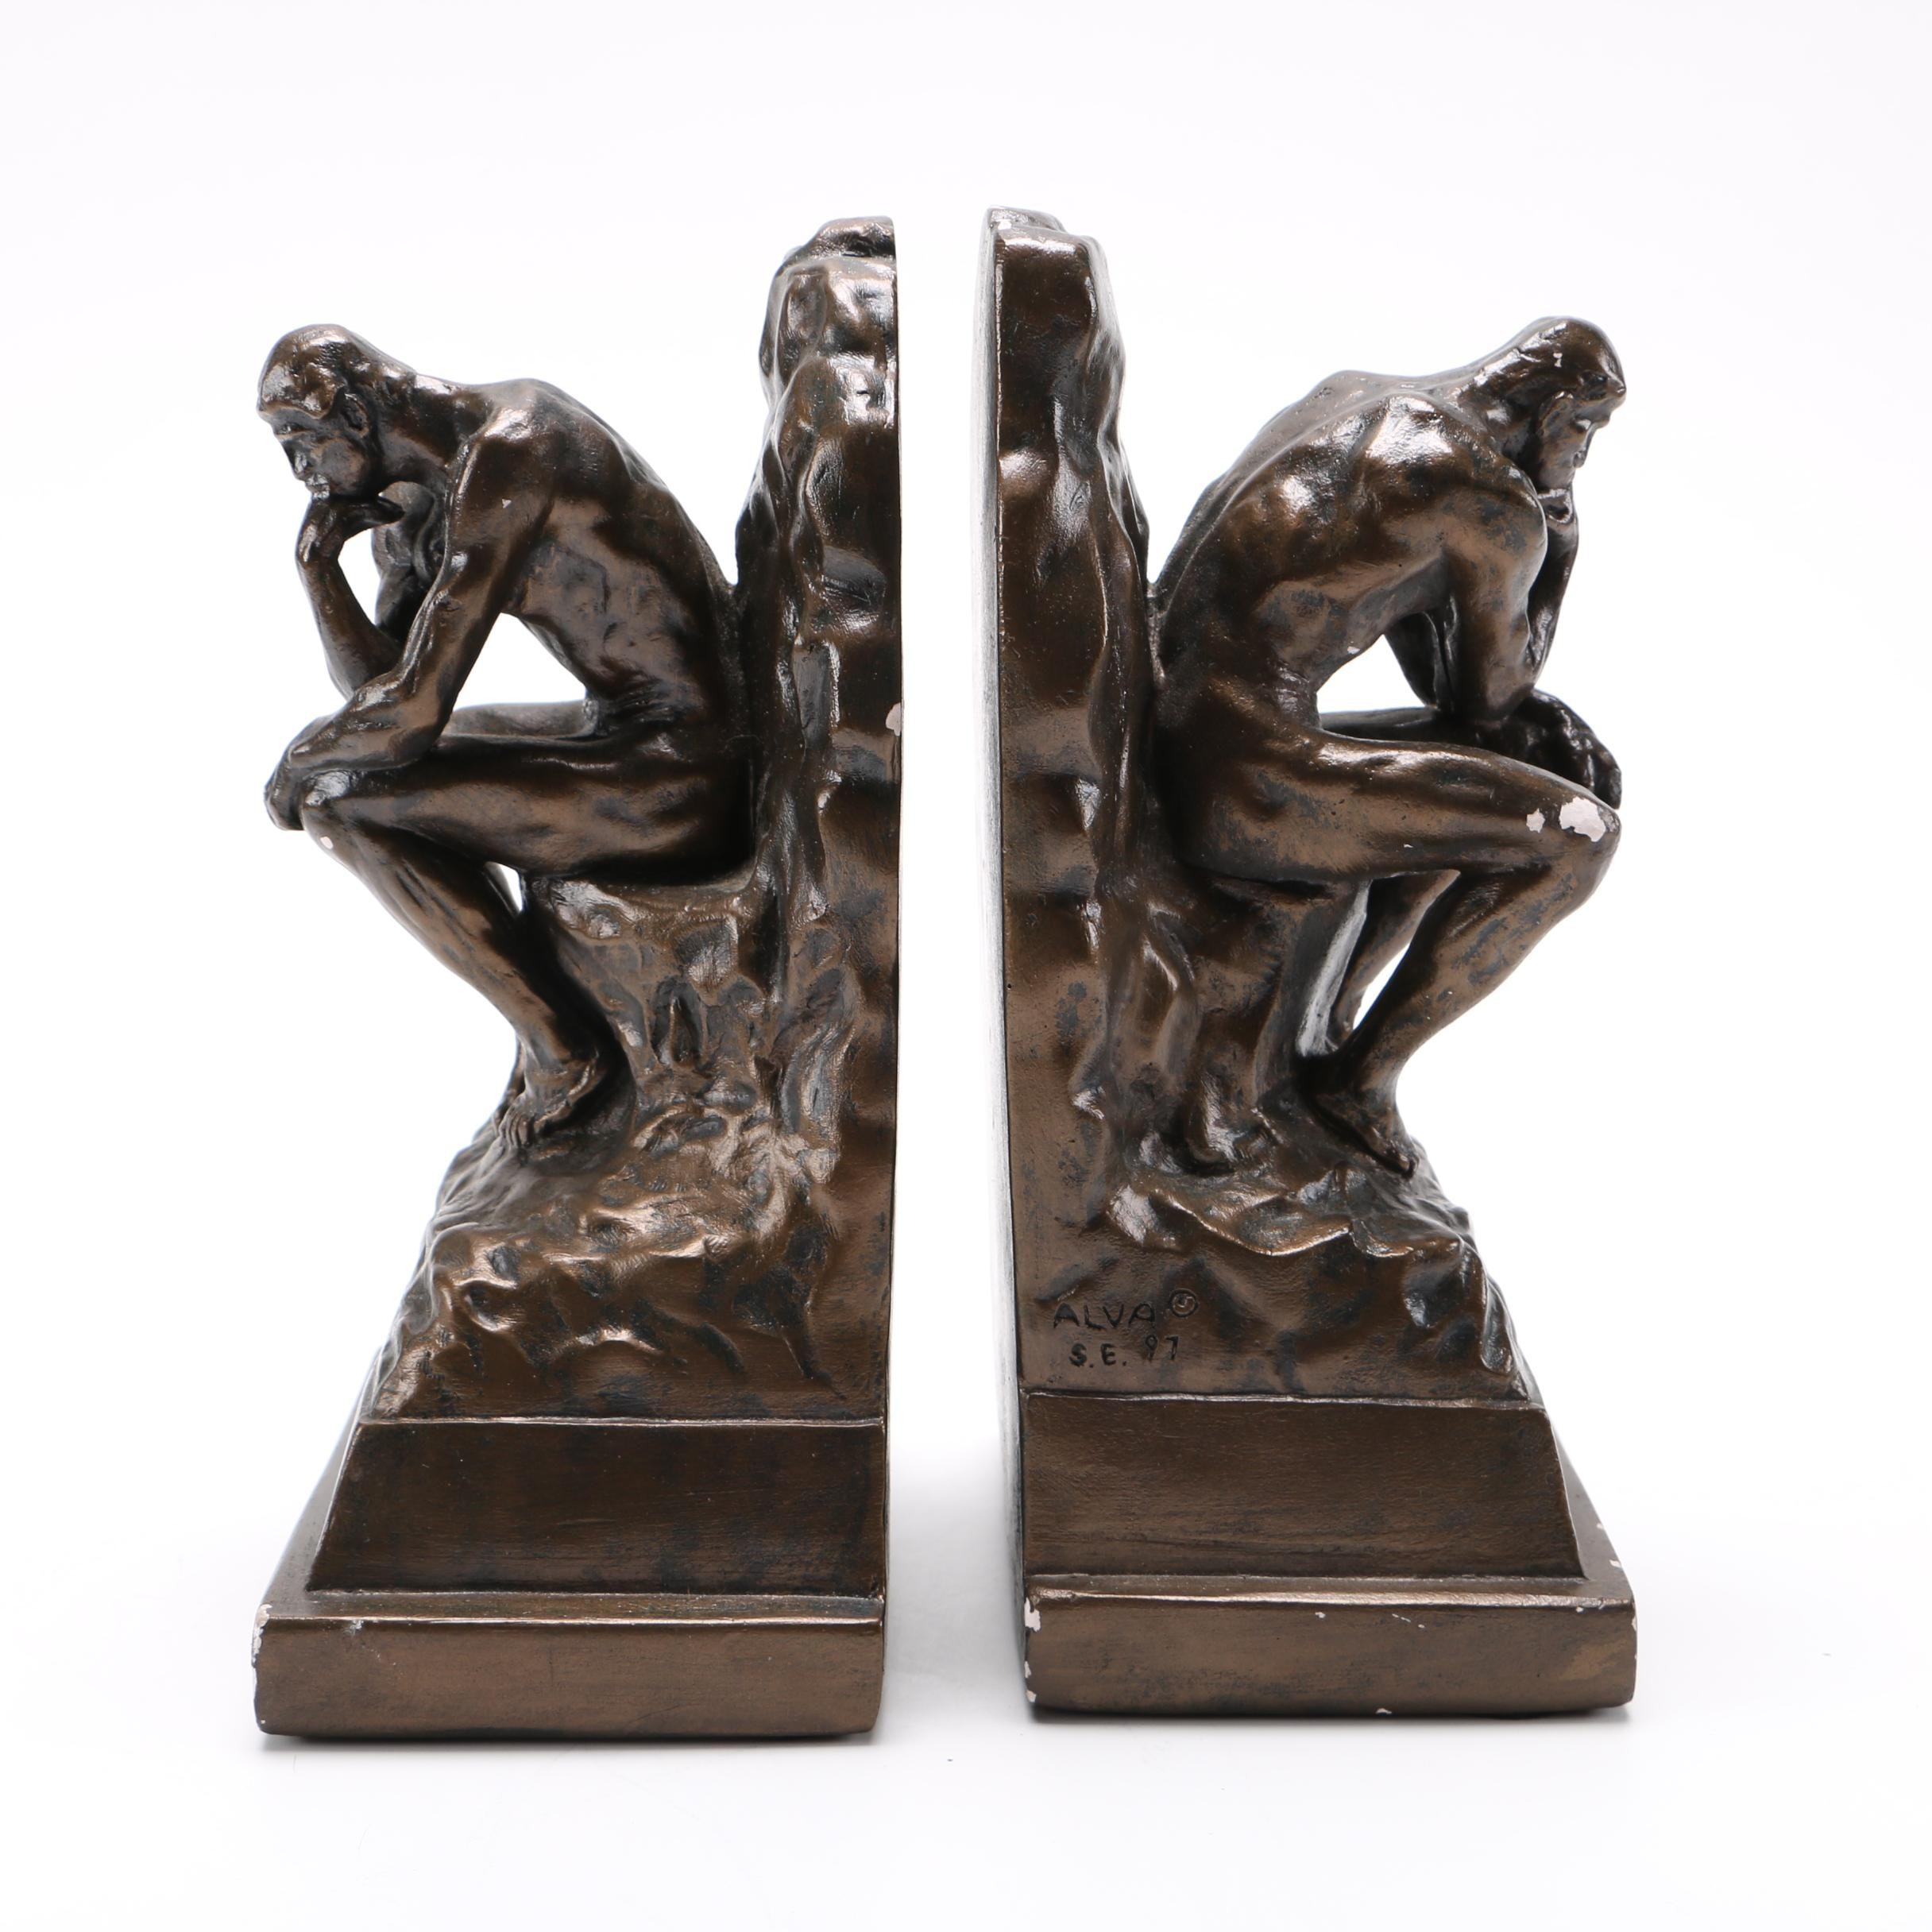 Pair of Thinker Bookends